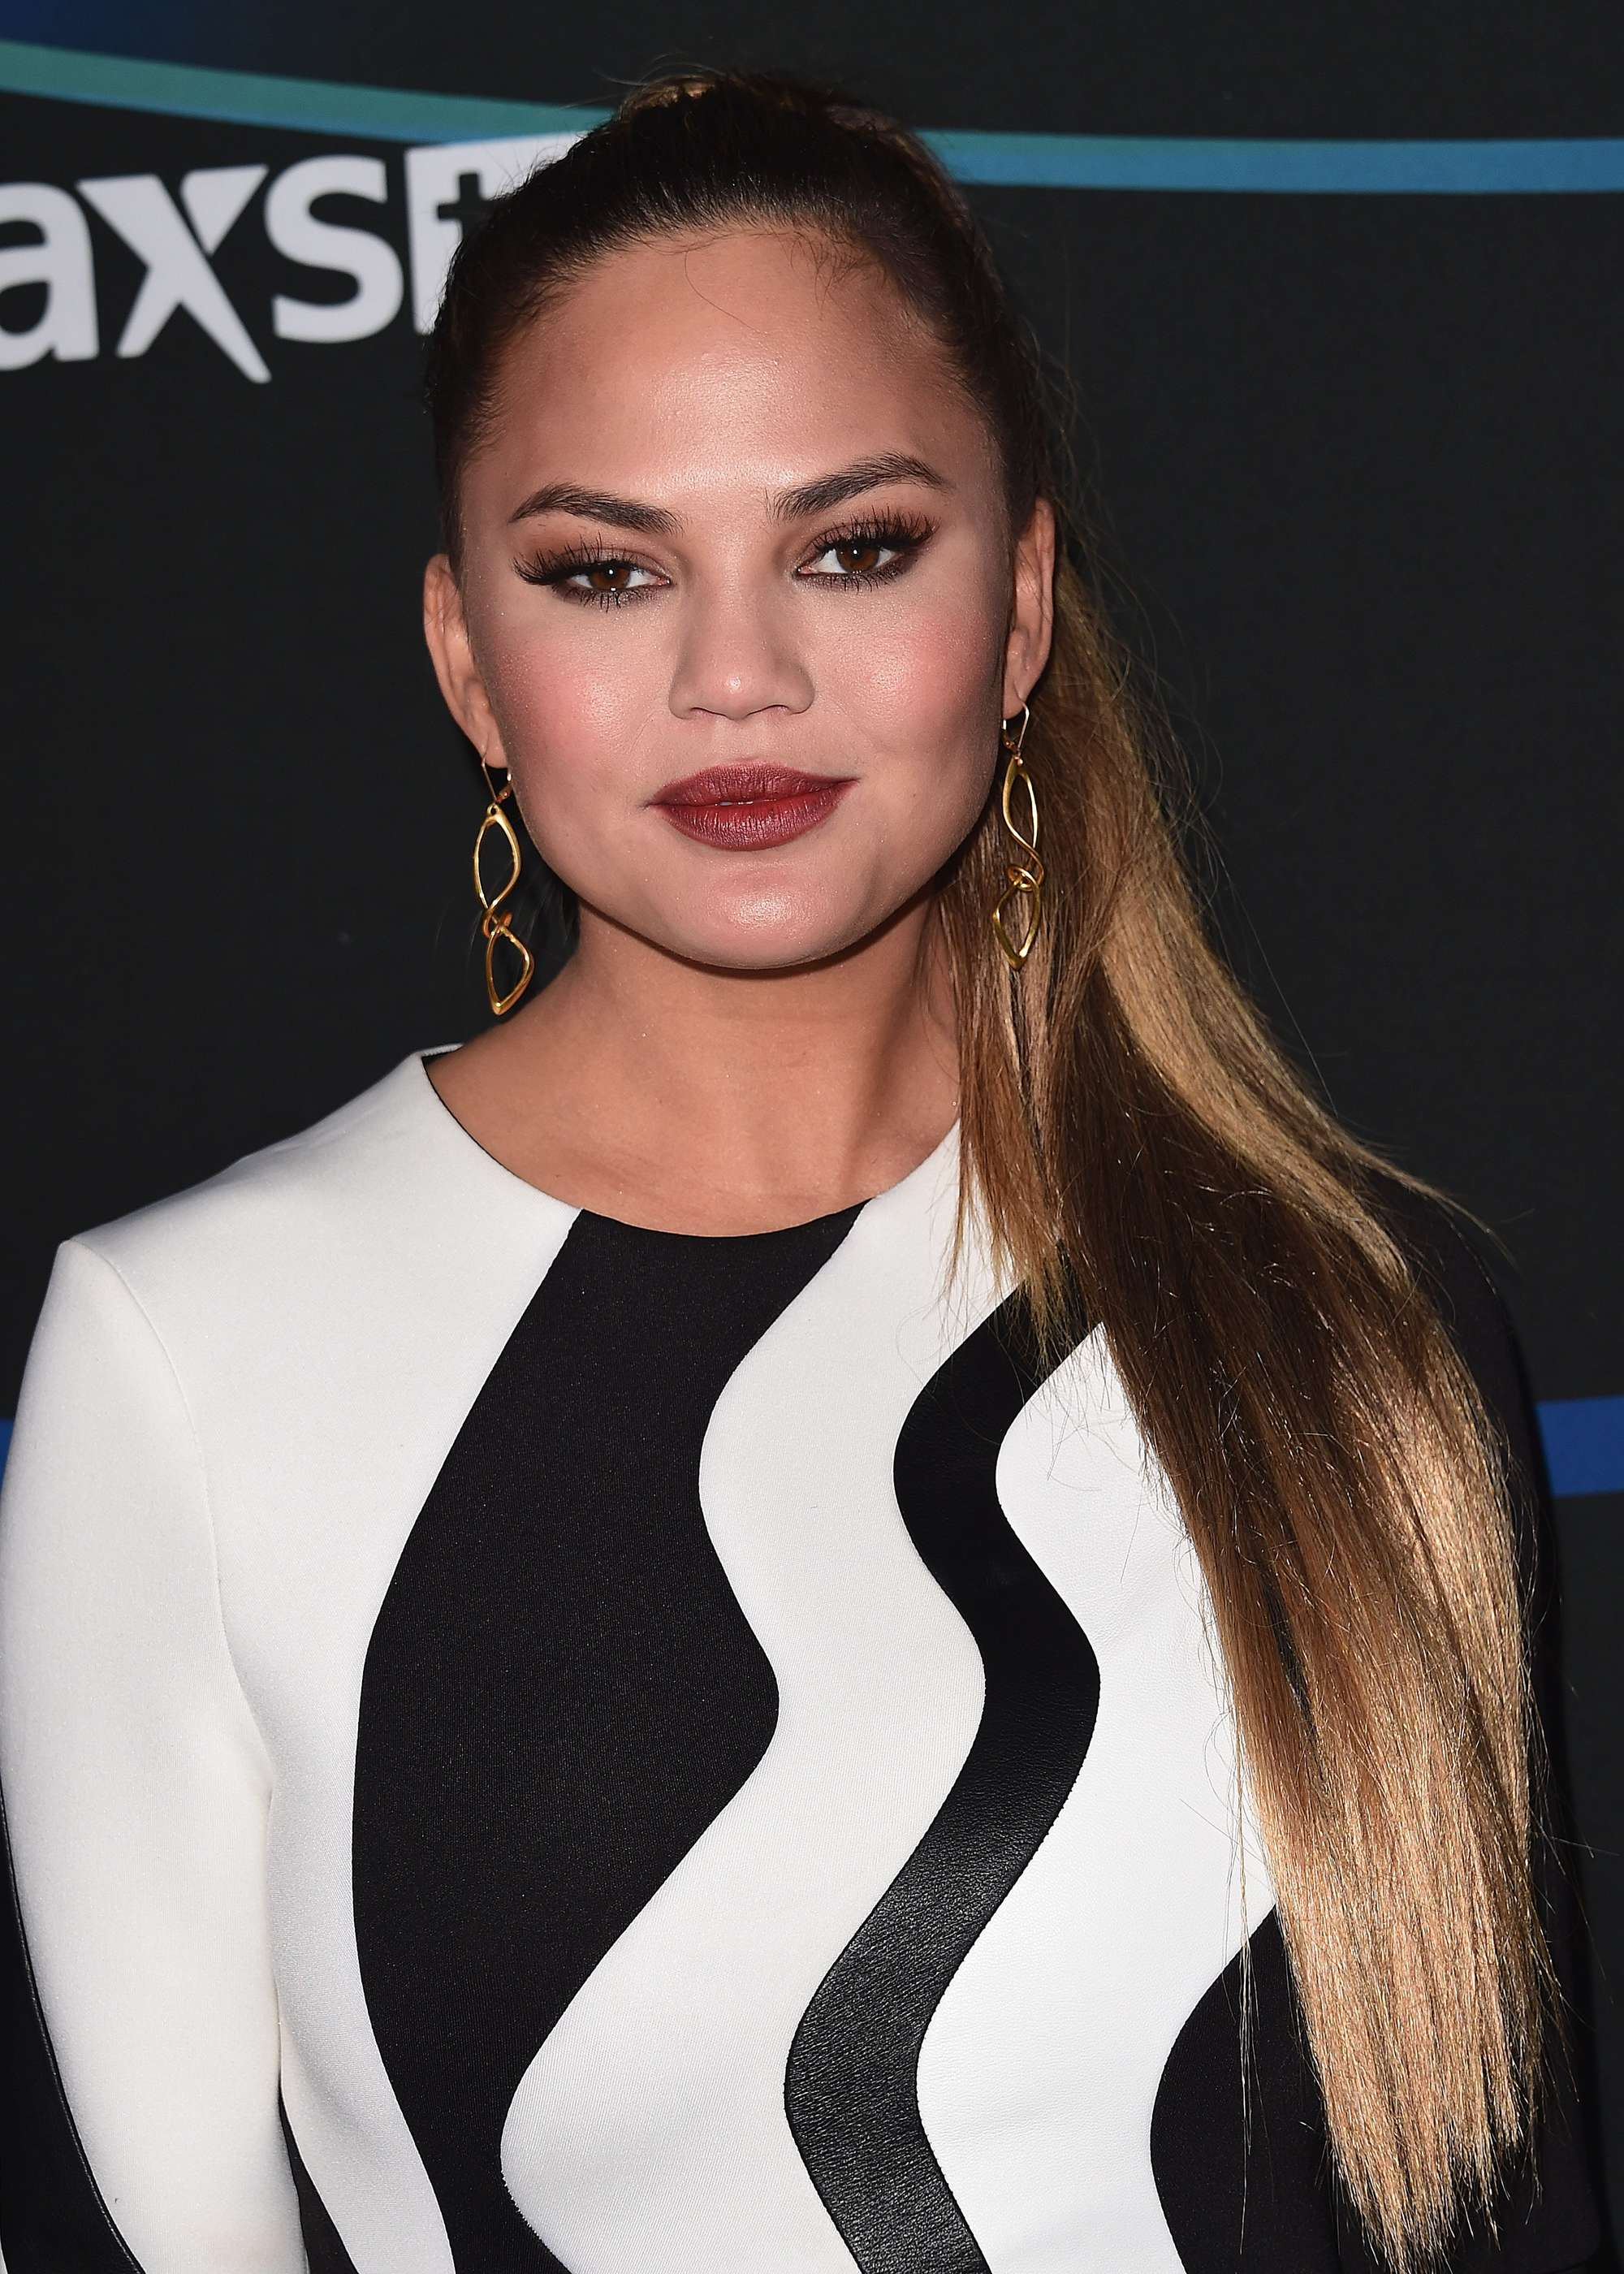 chrissy teigen flatters her round face shape with a high ponytail hairstyle and cool dress at event